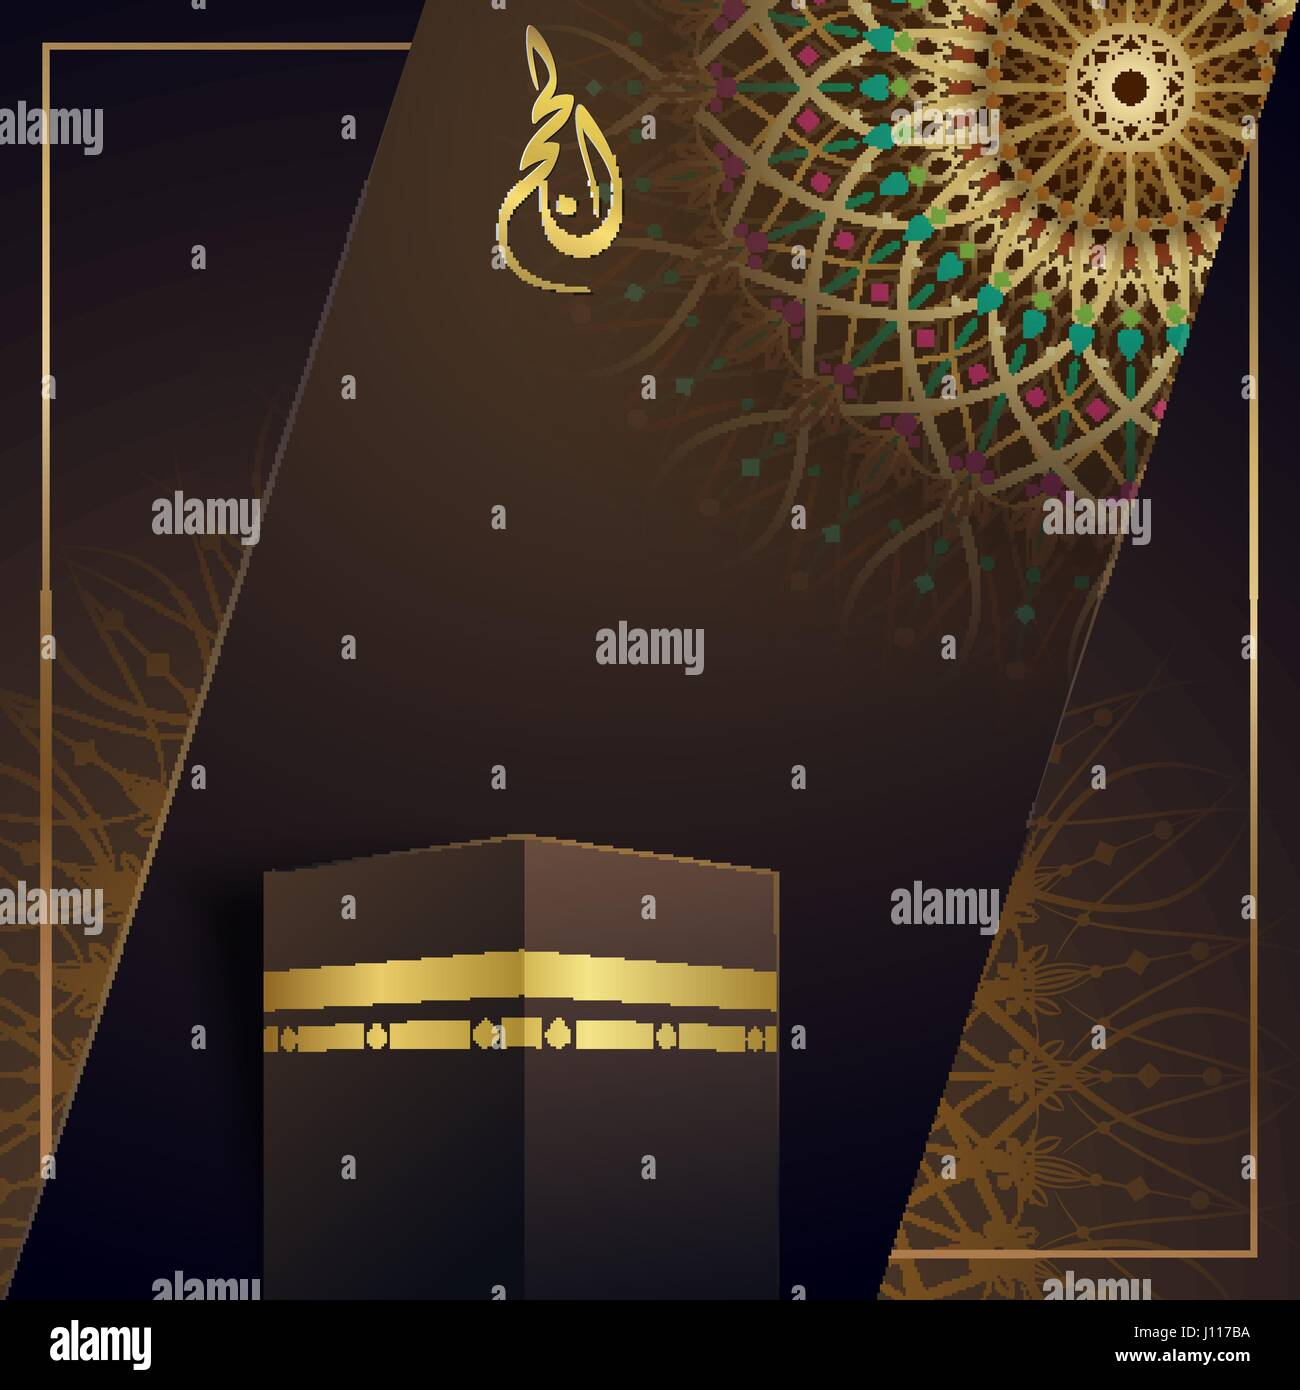 Umrah Banner: Islamic Greeting Card Template For Hajj With Kaaba And